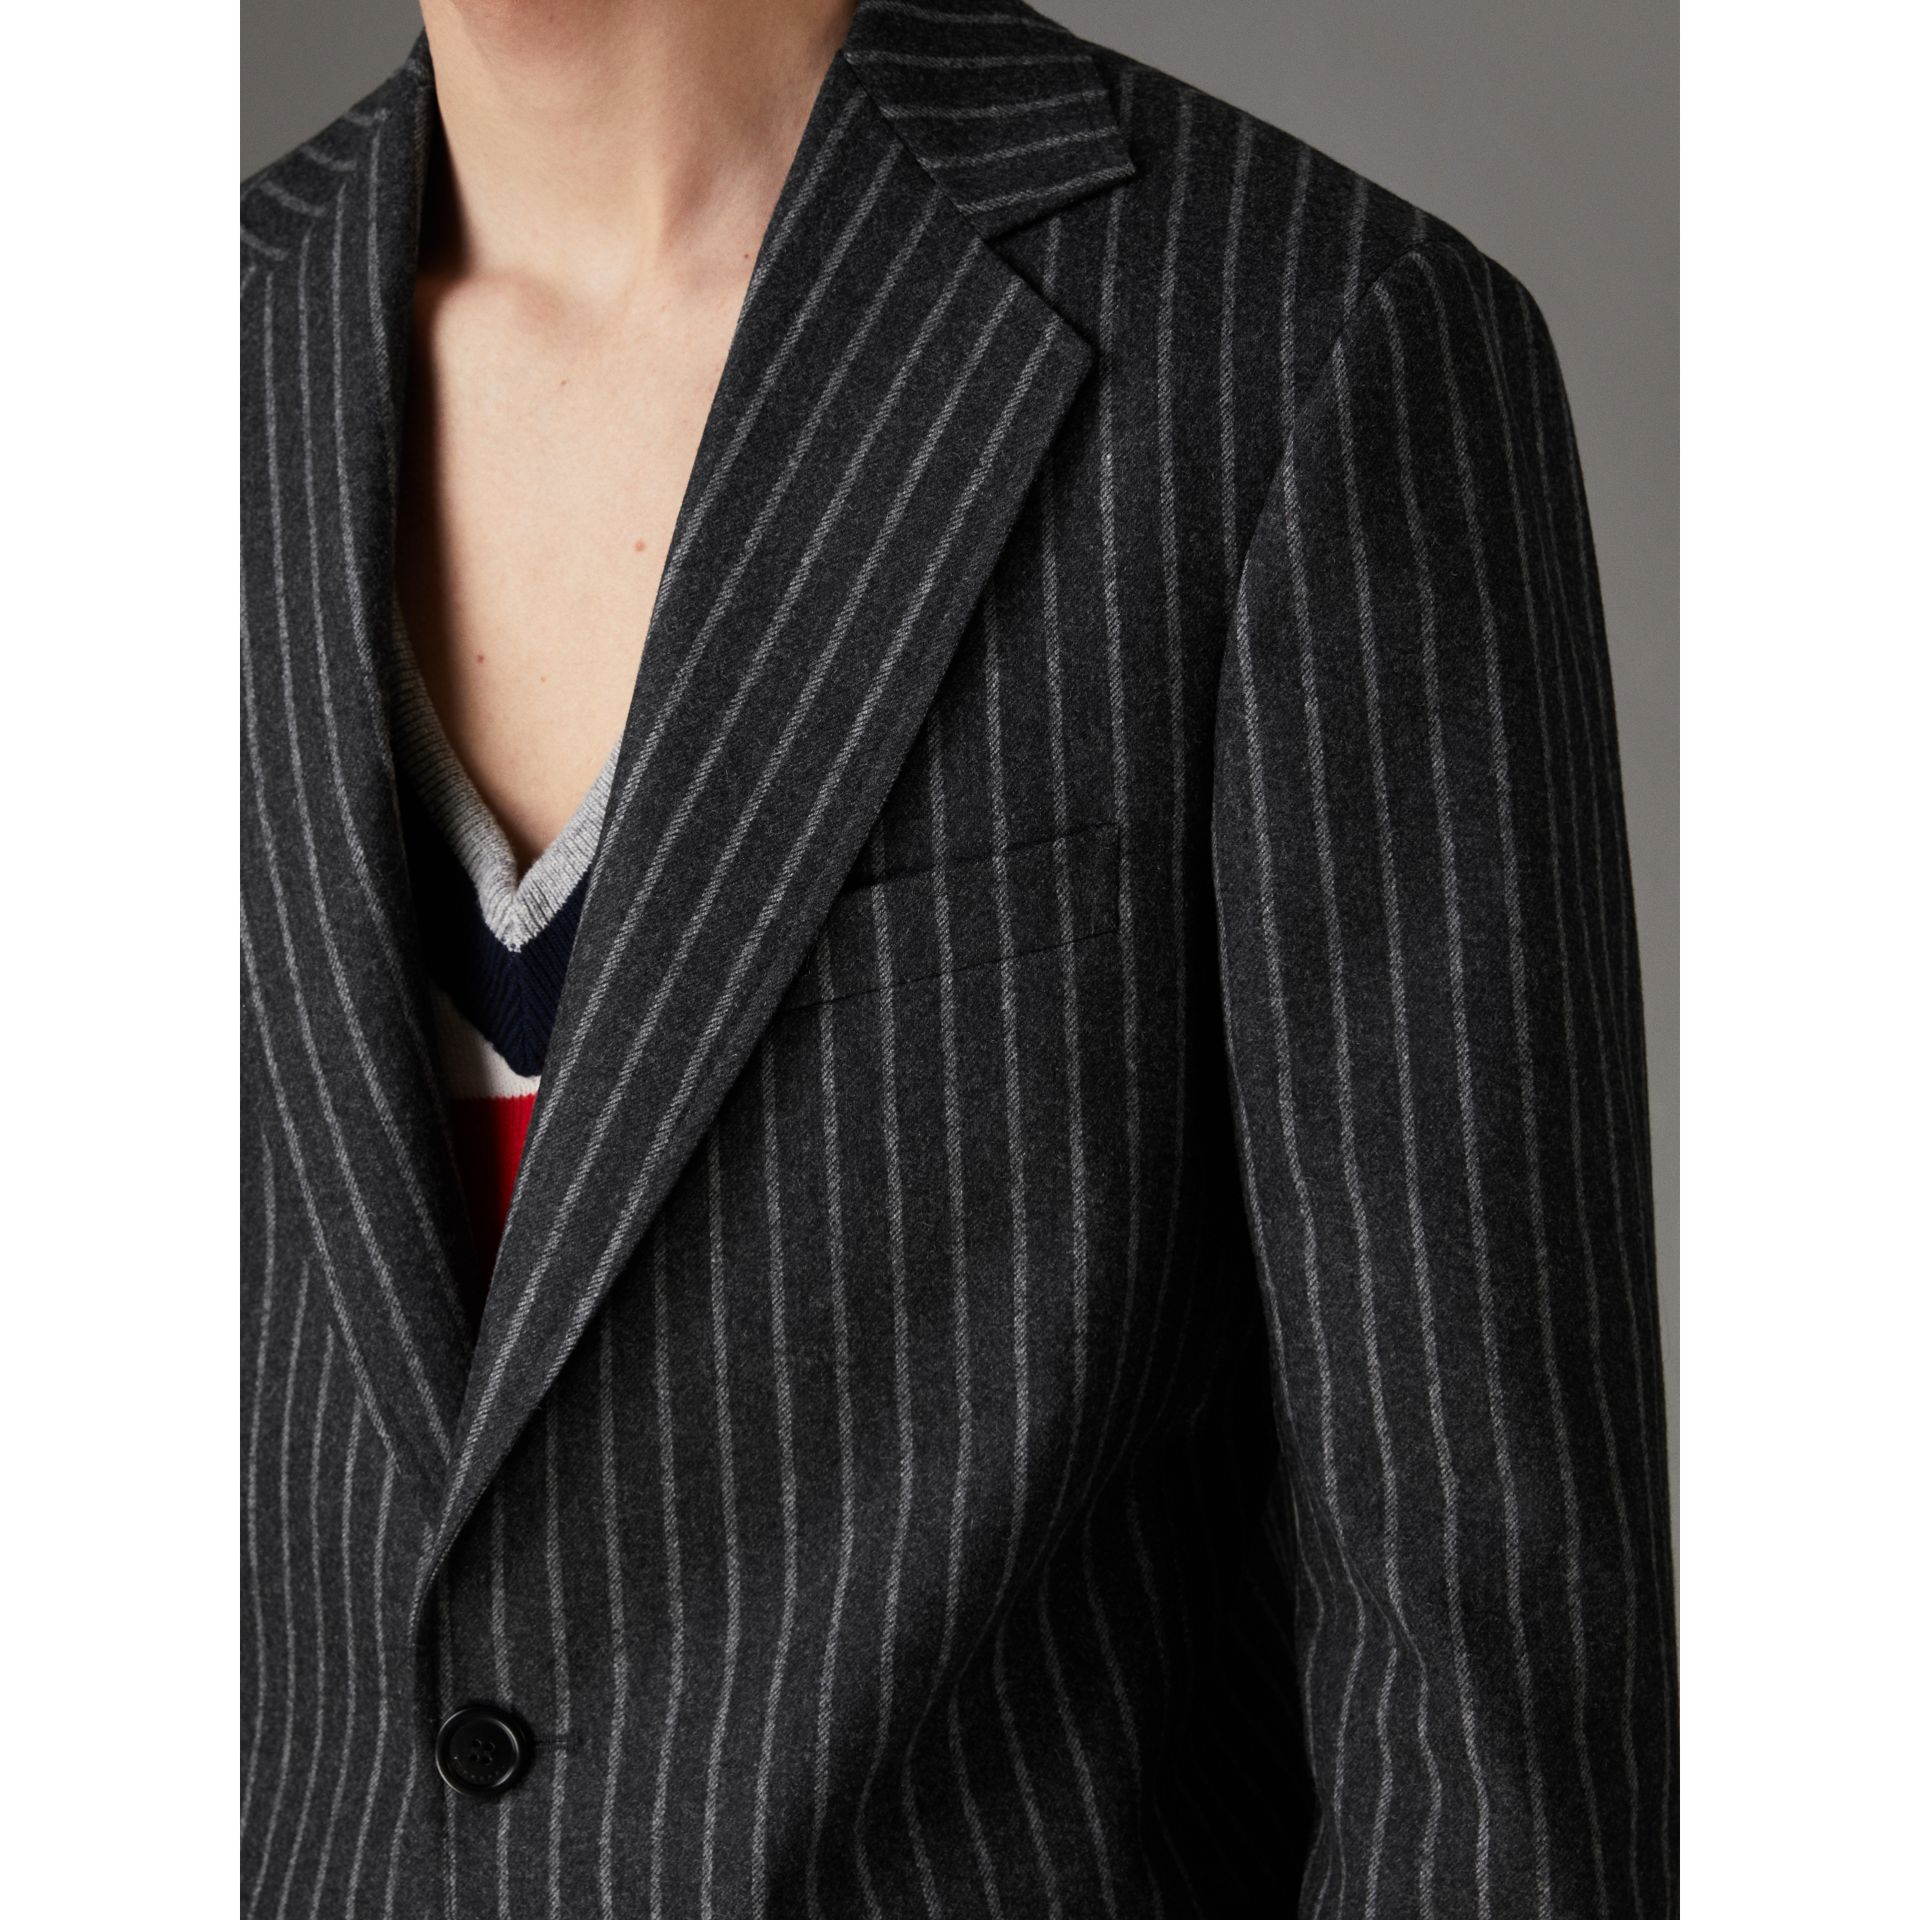 Pinstriped Wool Blend Twill Tailored Jacket in Dark Grey | Burberry Singapore - gallery image 1